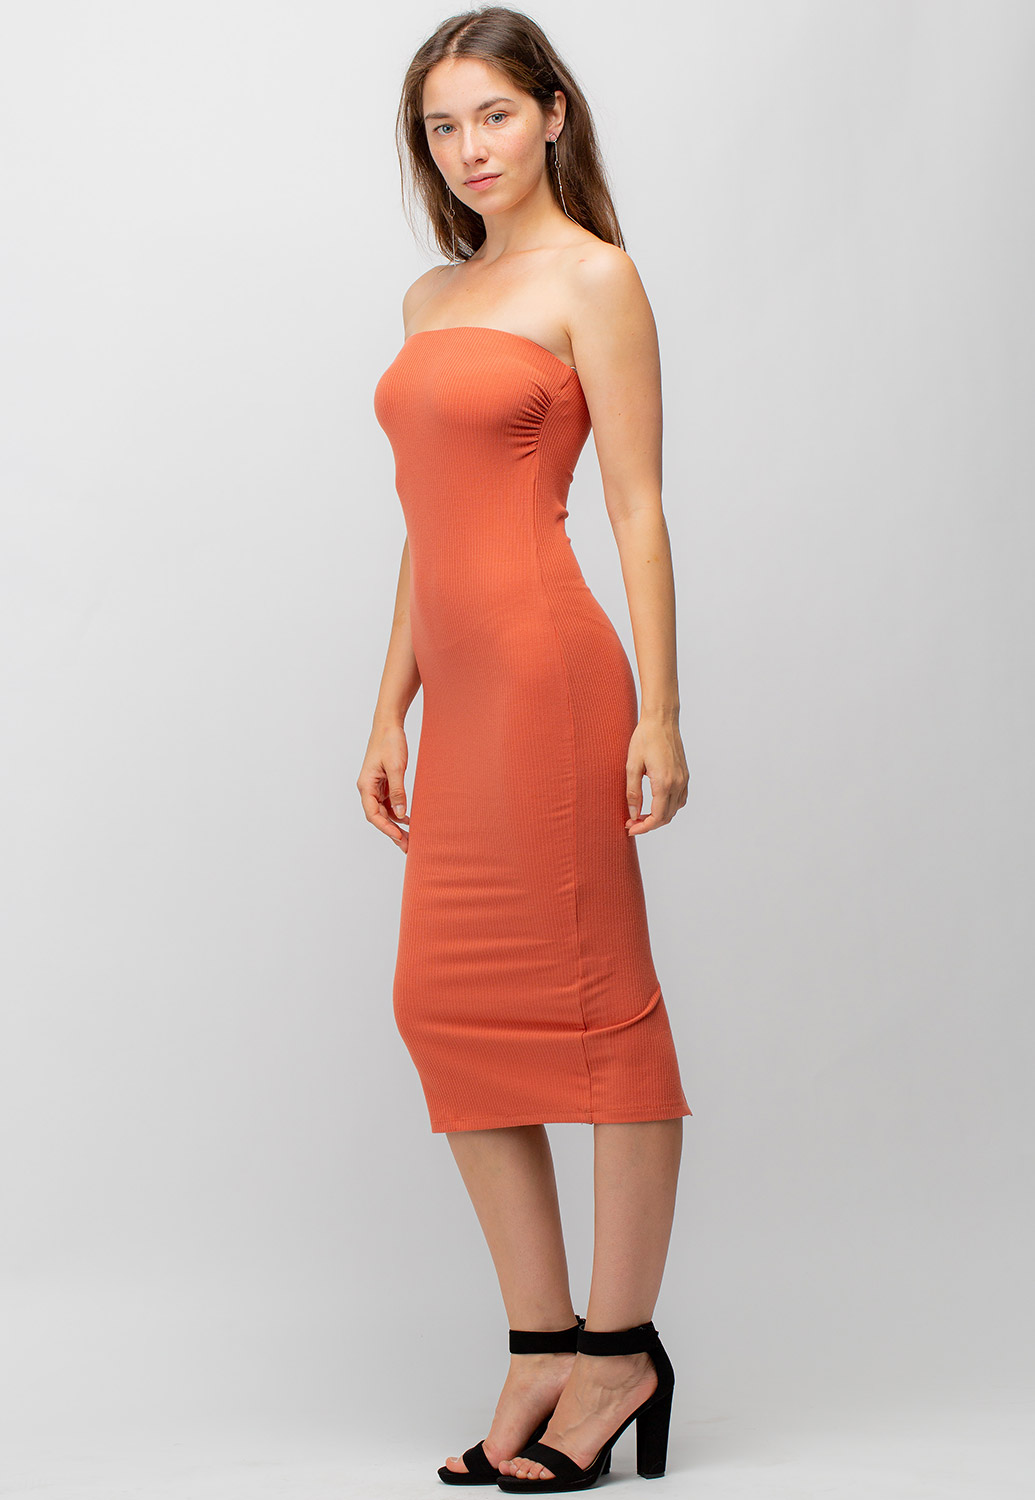 Solid Bodycon Midi Tube Top Dress